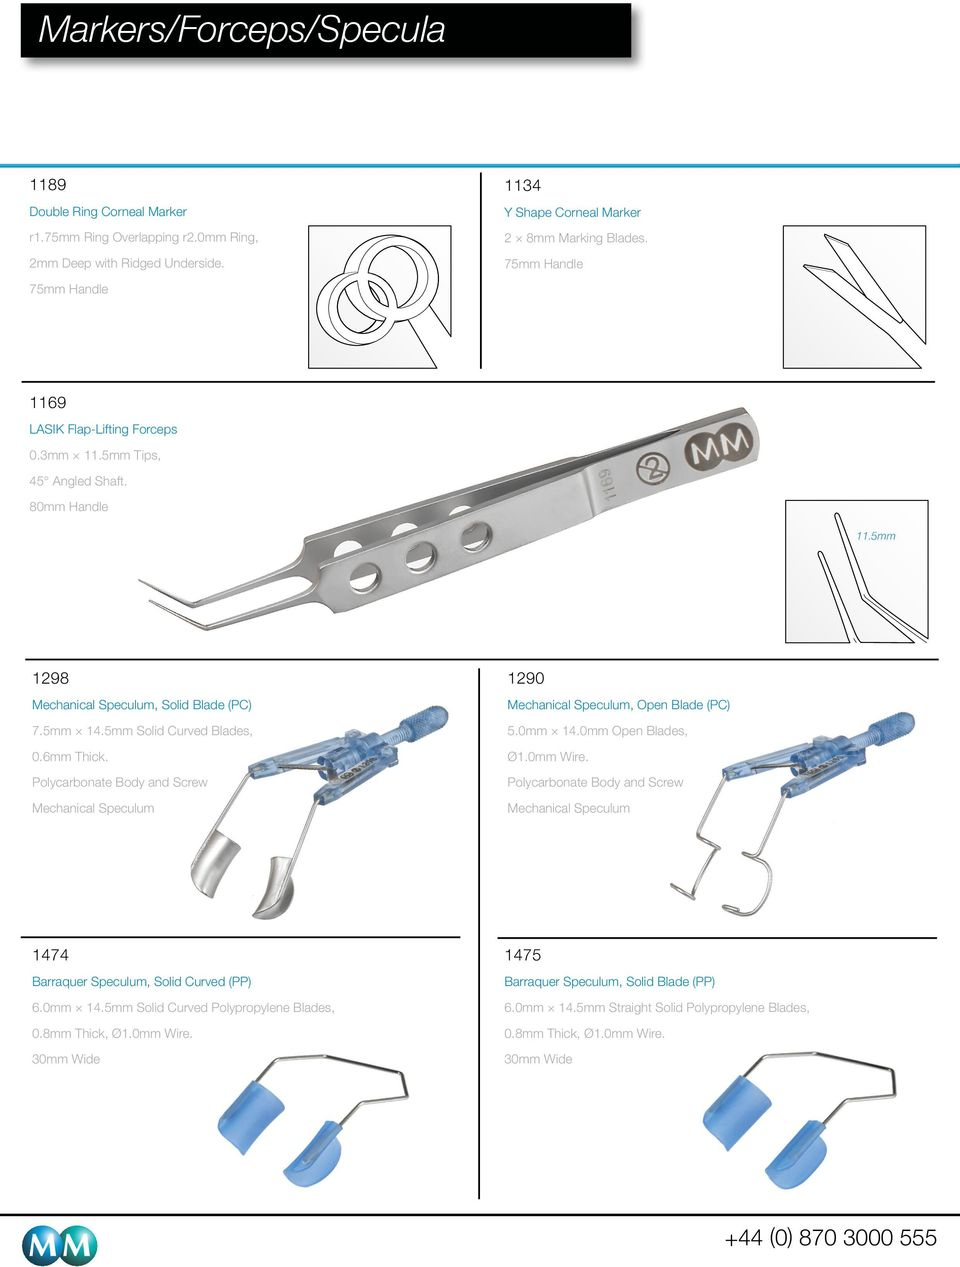 Polycarbonate Body and Screw Mechanical Speculum 90 Mechanical Speculum, Open Blade (PC) 5.0mm 4.0mm Open Blades, Ø.0mm Wire.